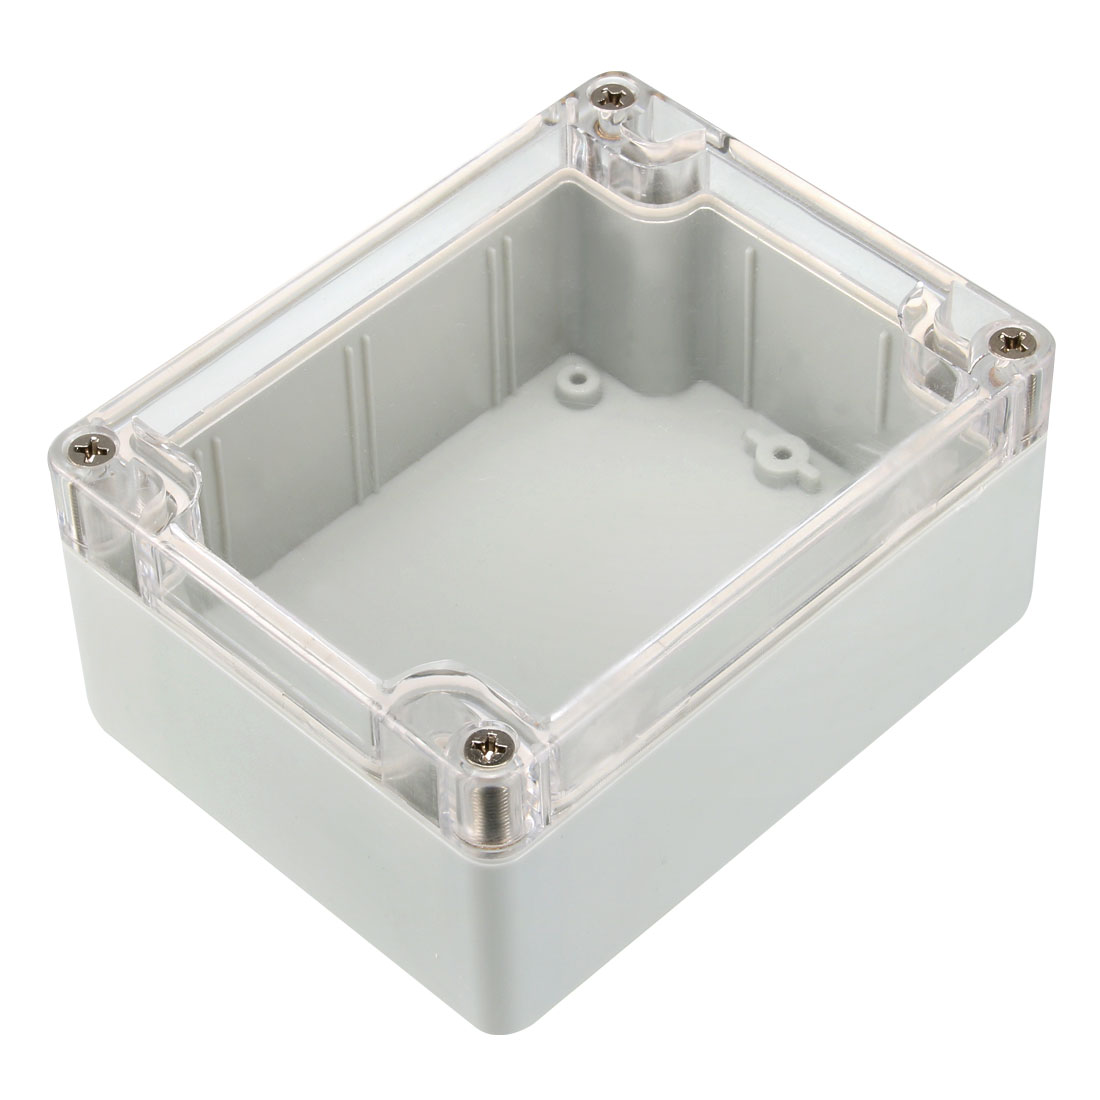 115mmx90mmx55mm IP65 Electronic Plastic Junction Box Enclosure Case Gray Color